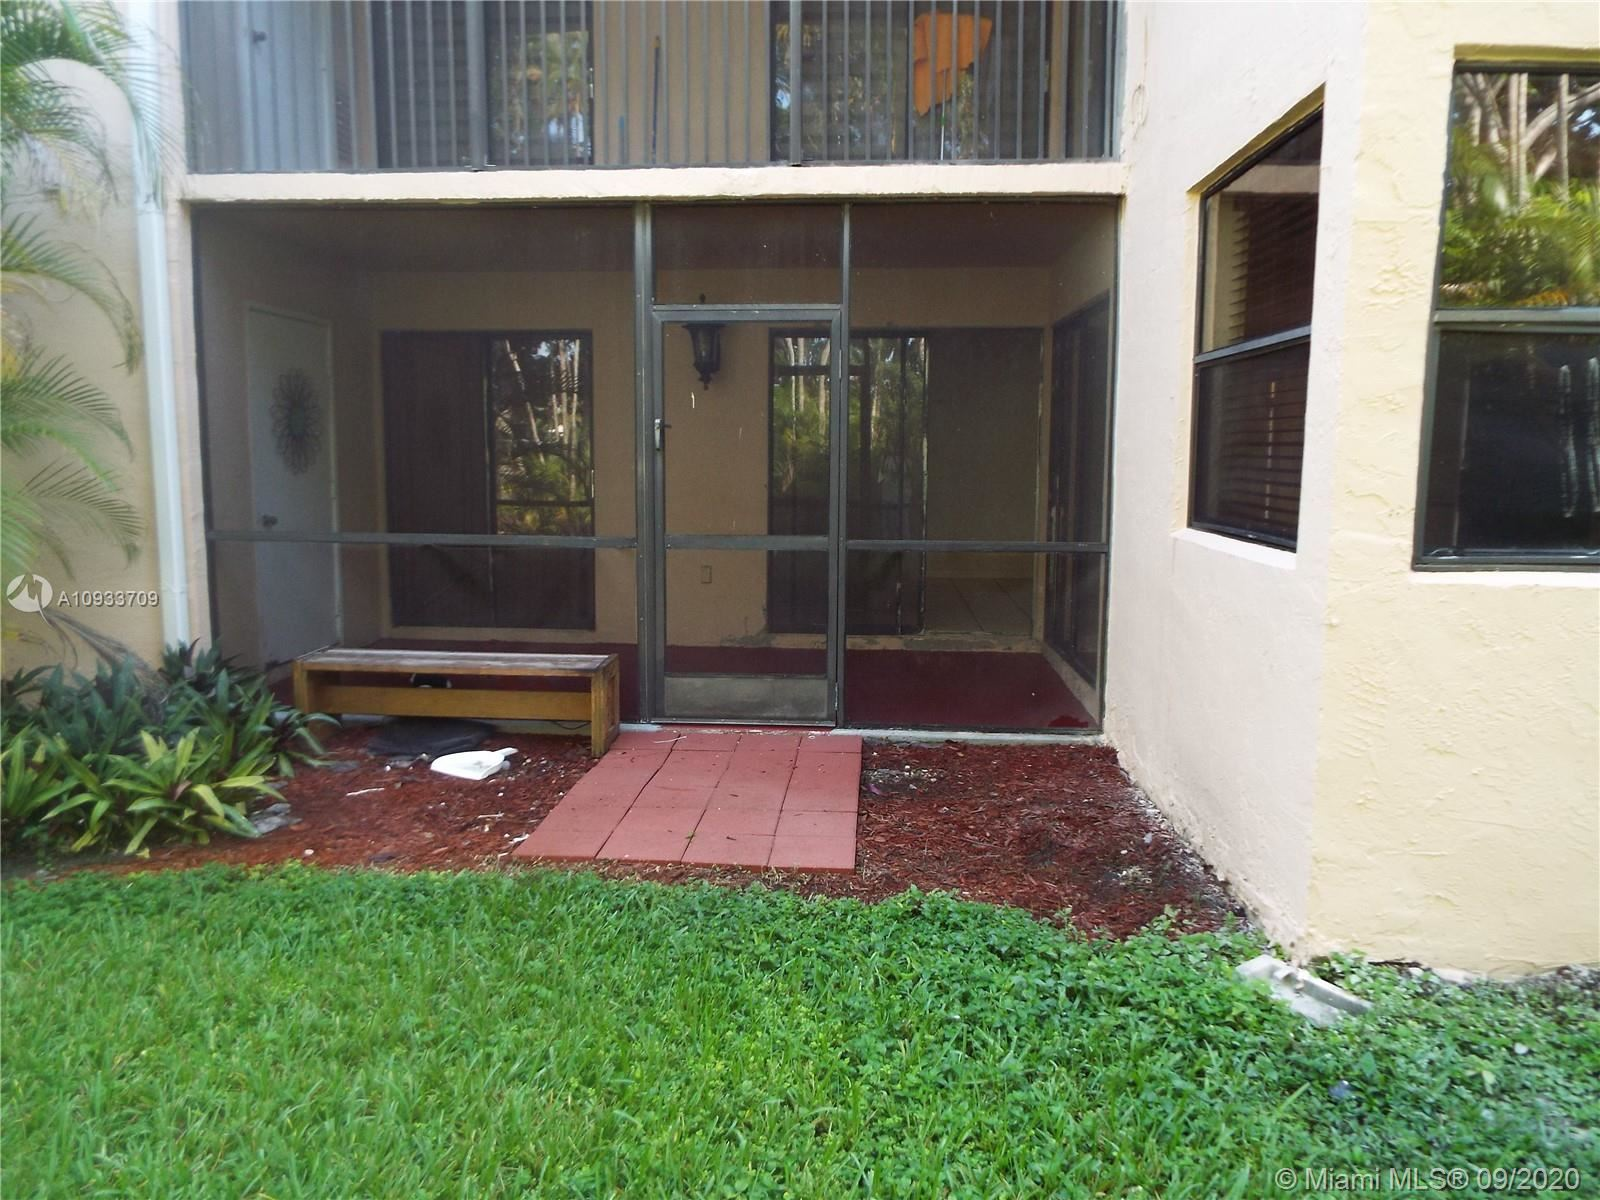 Photo of 1200 N Liberty Ave #1200G, Homestead, FL 33034 (MLS # A10933709)